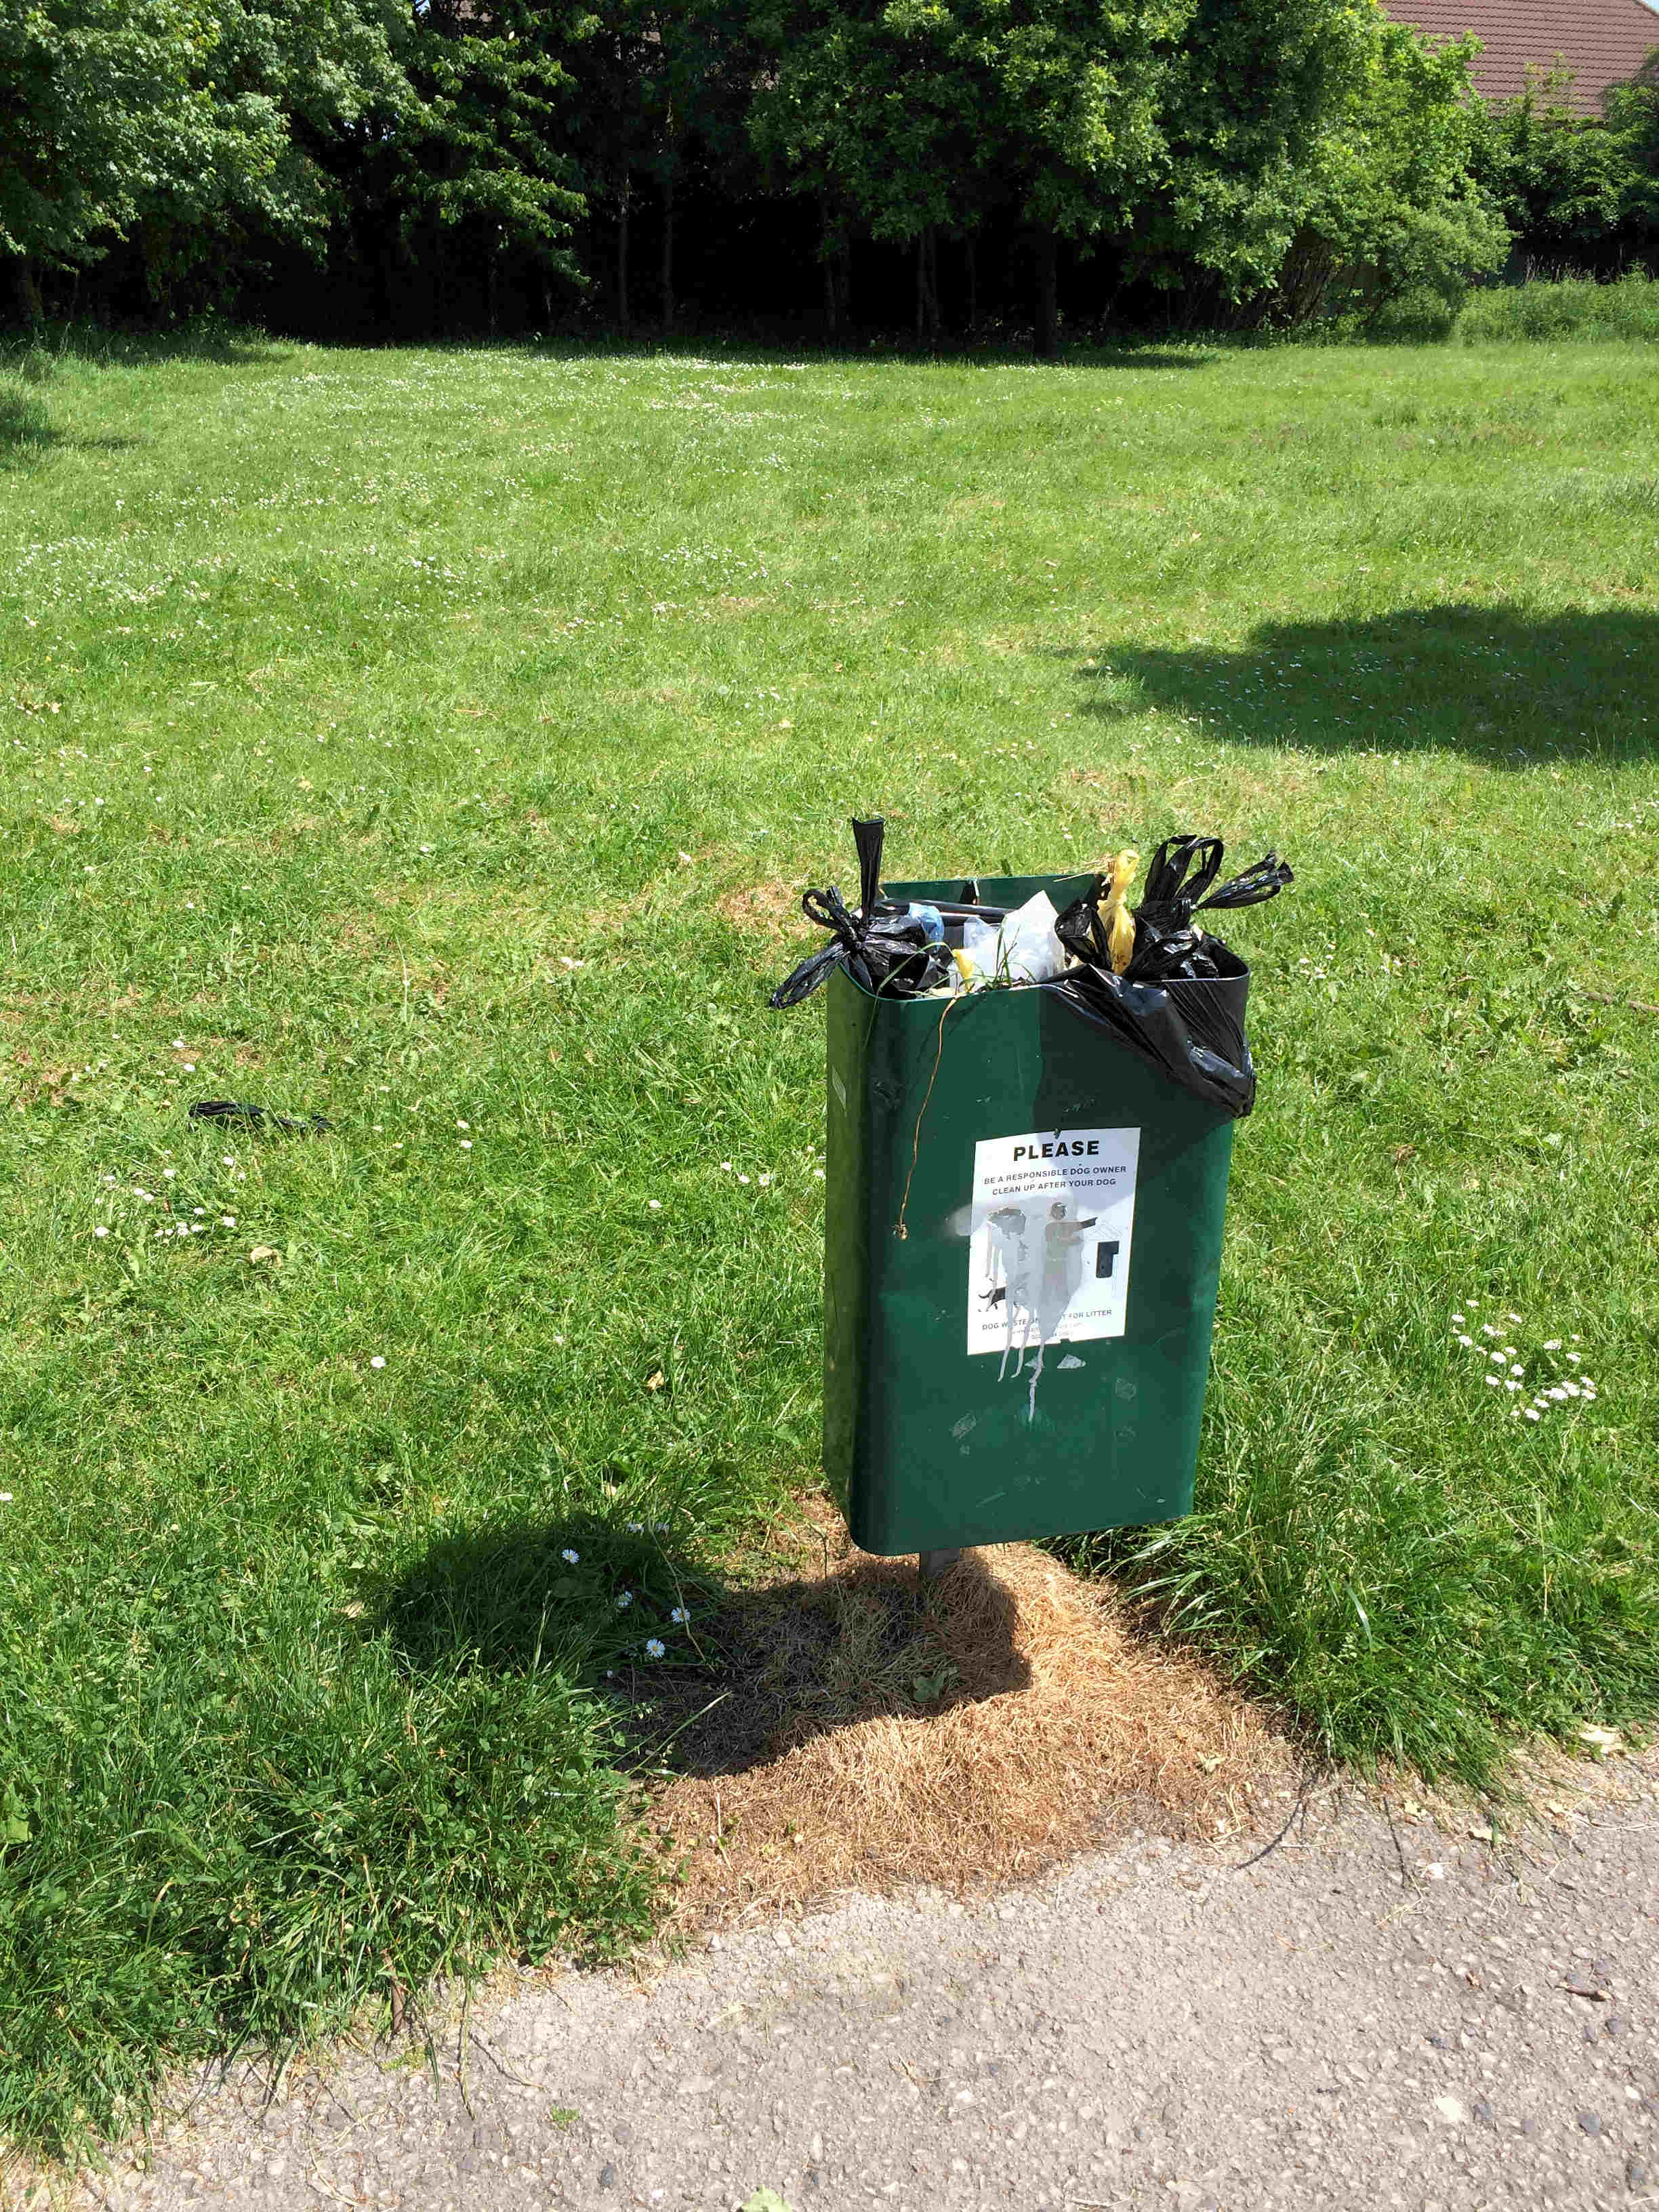 Full poop scoop bin on the Foxwood Park has been reported for emptying